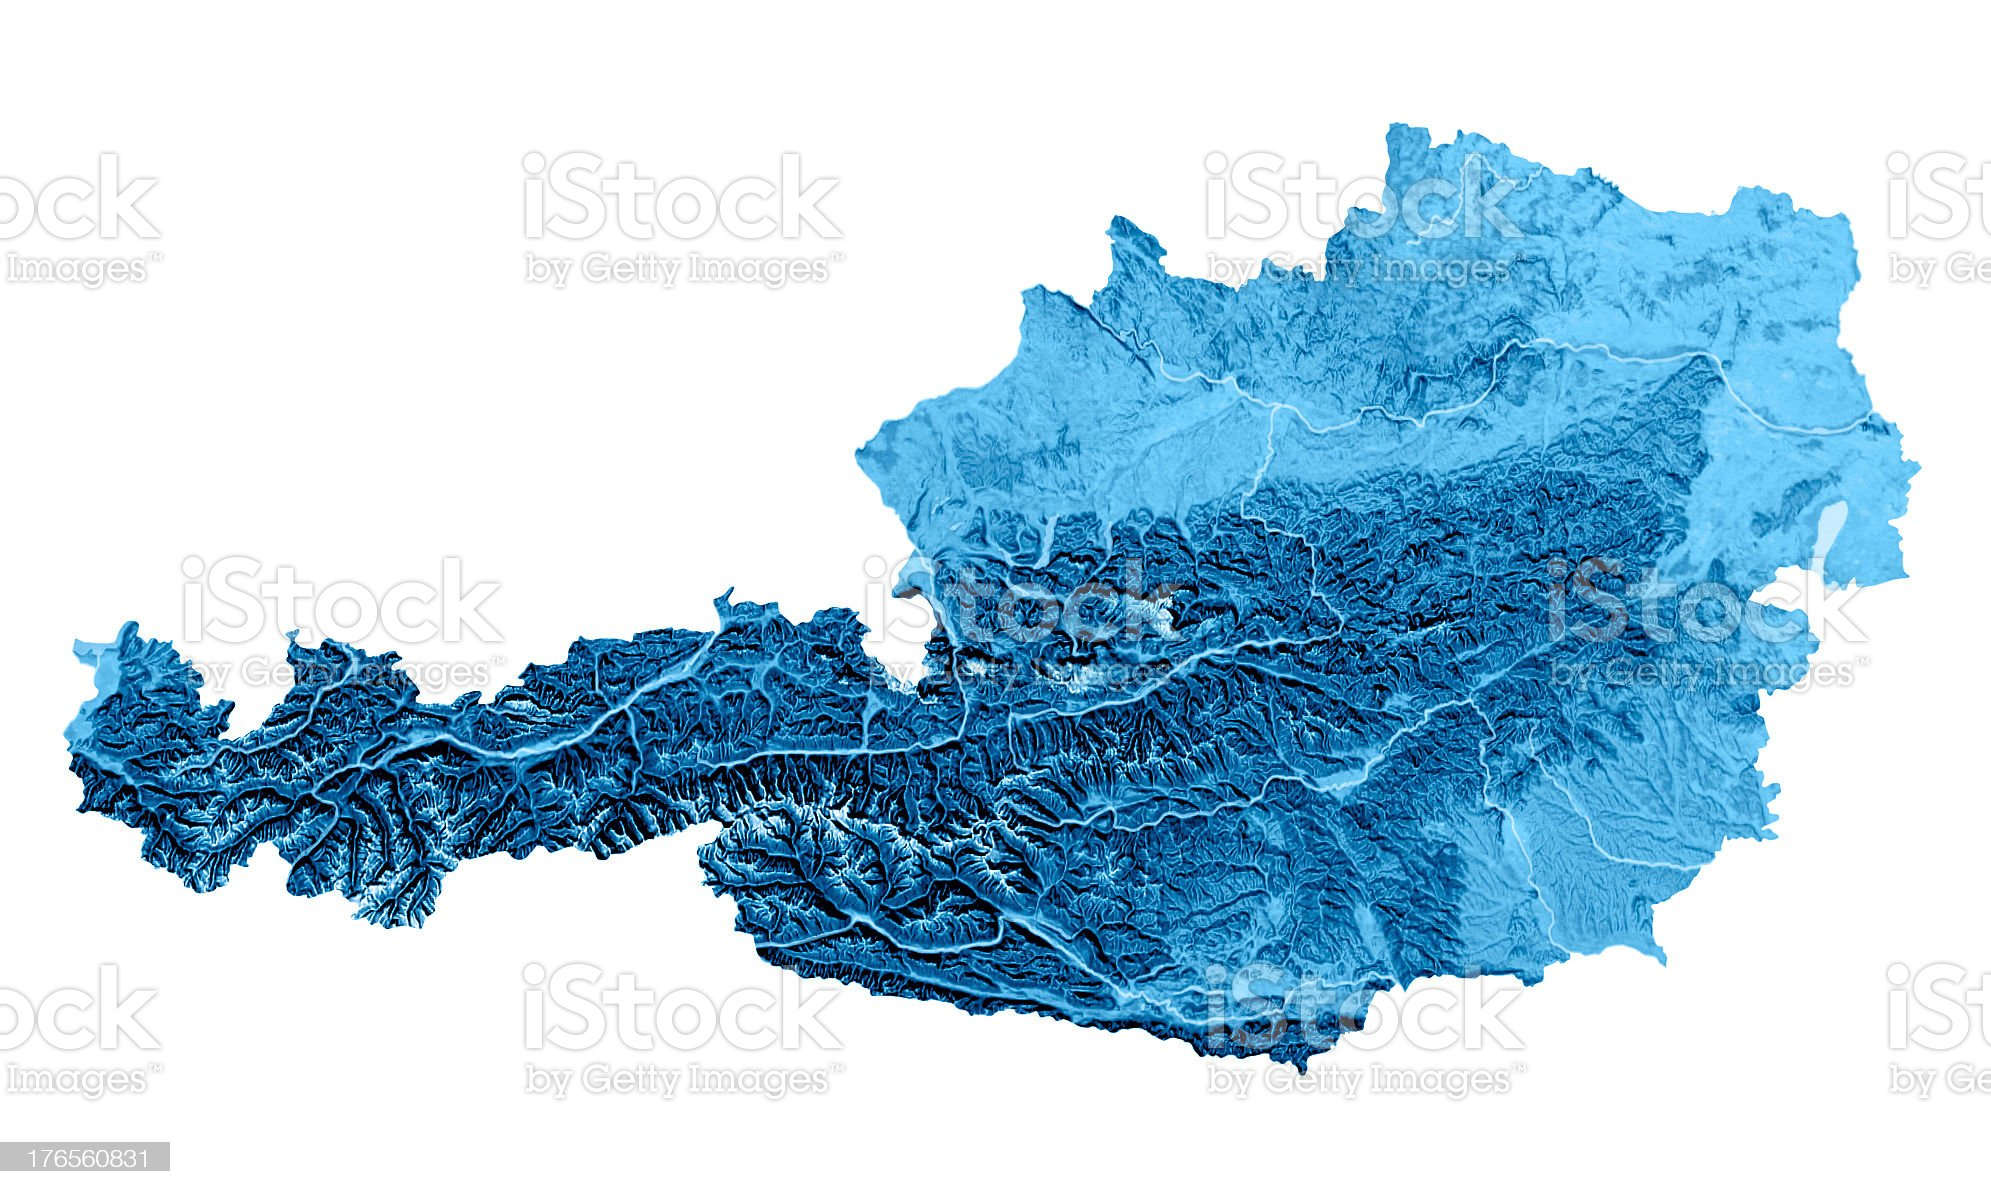 Austria Topographic Map Isolated royalty-free stock photo